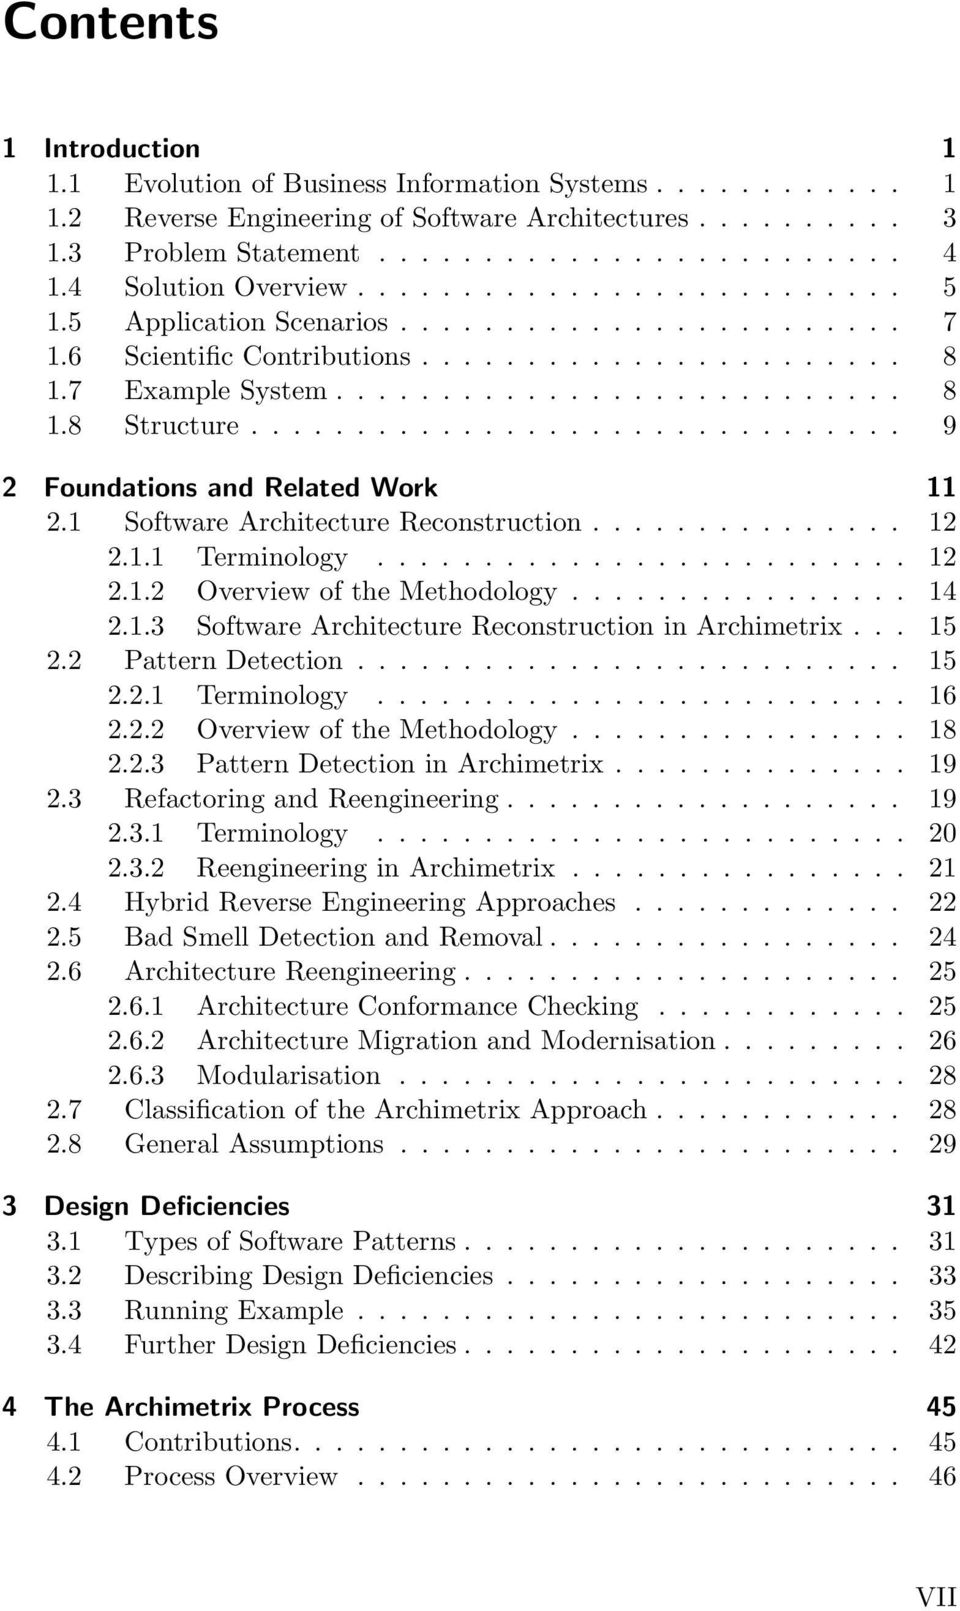 .............................. 9 2 Foundations and Related Work 11 2.1 Software Architecture Reconstruction............... 12 2.1.1 Terminology......................... 12 2.1.2 Overview of the Methodology.